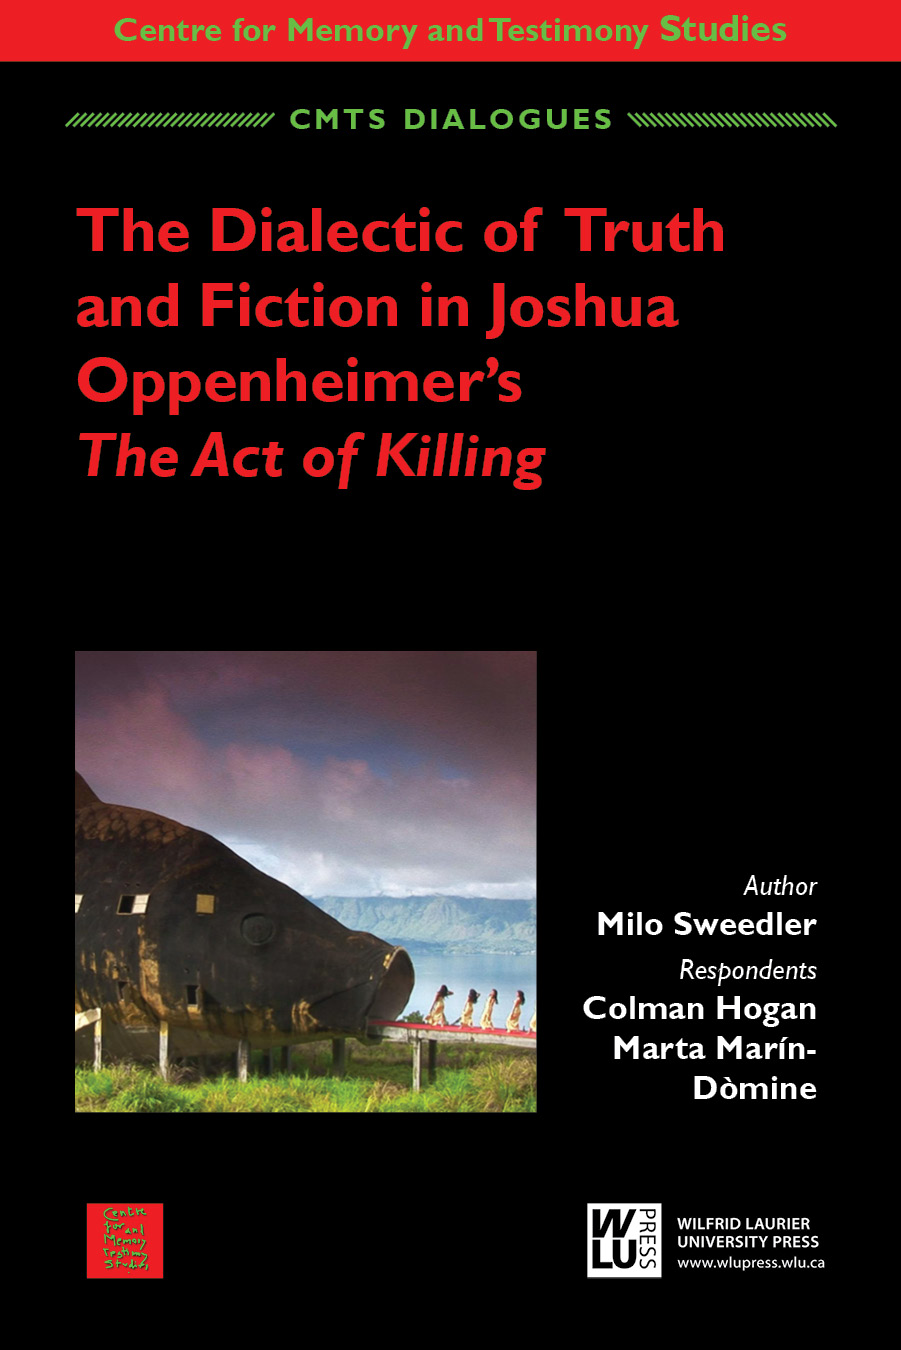 The Dialectic of Truth and Fiction in Joshua Oppenheimer?s The Act of Killing